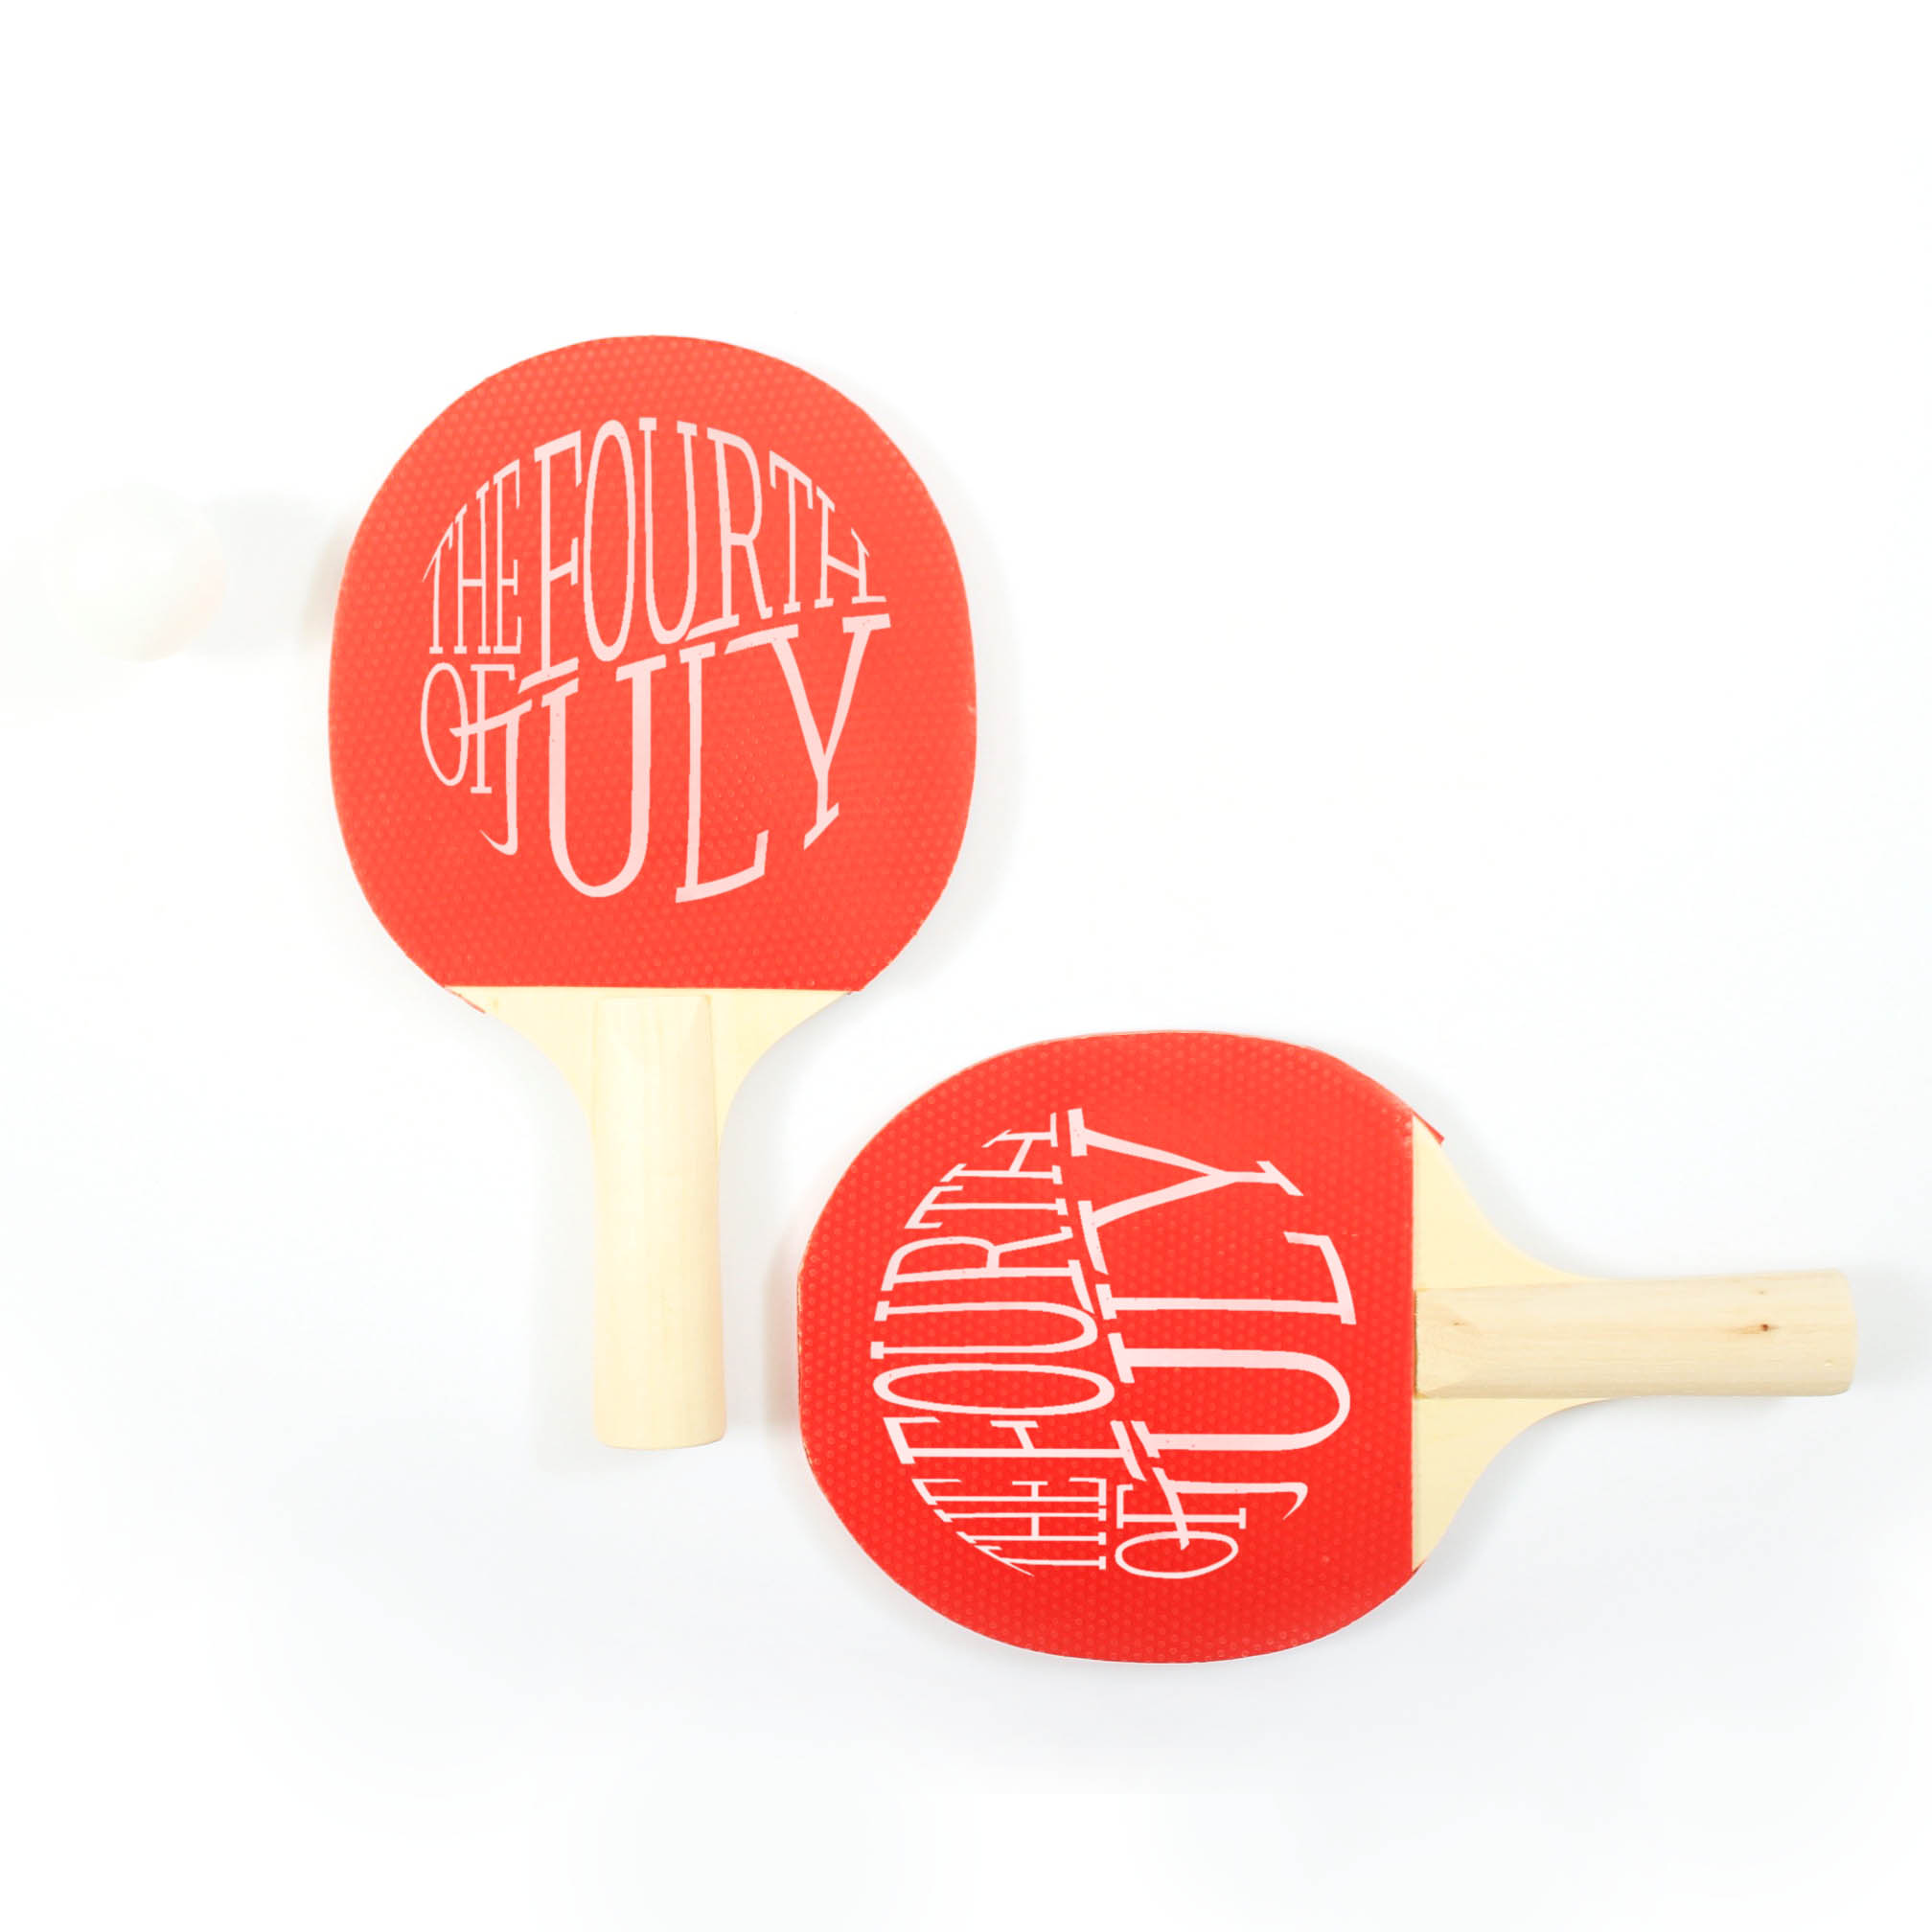 fourth of july ping pong.jpg